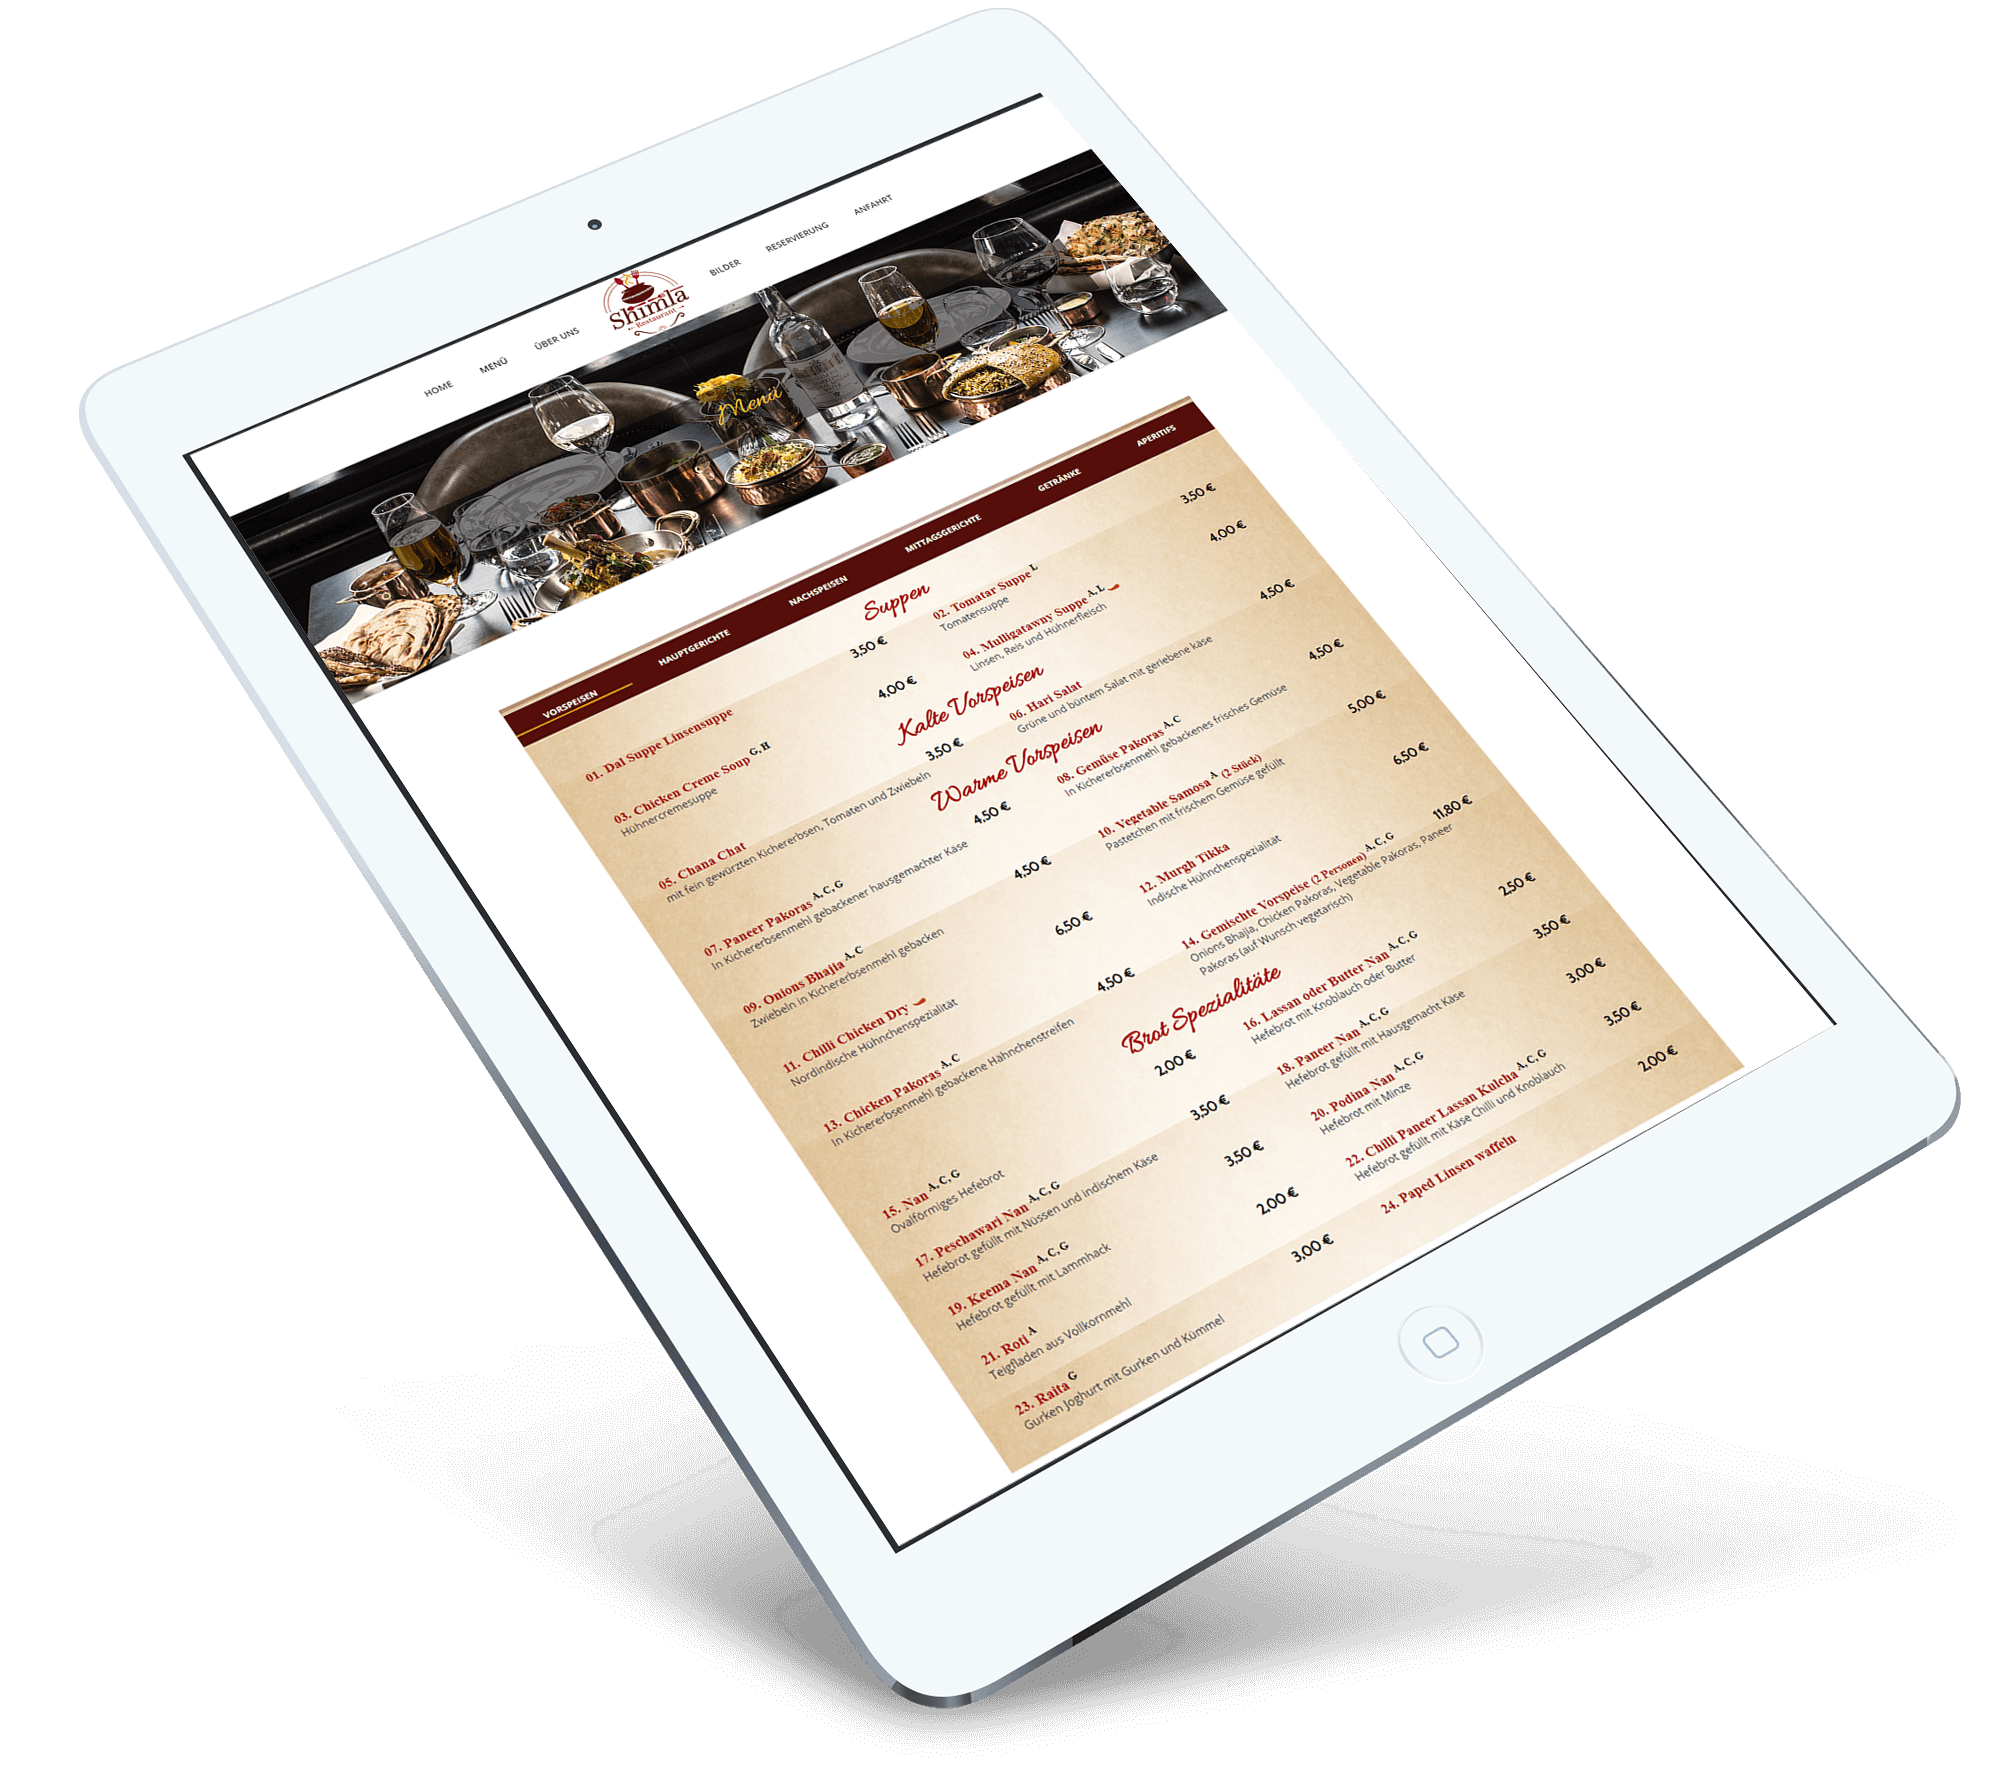 Brandcrock-Shimla restaurant menu ipad